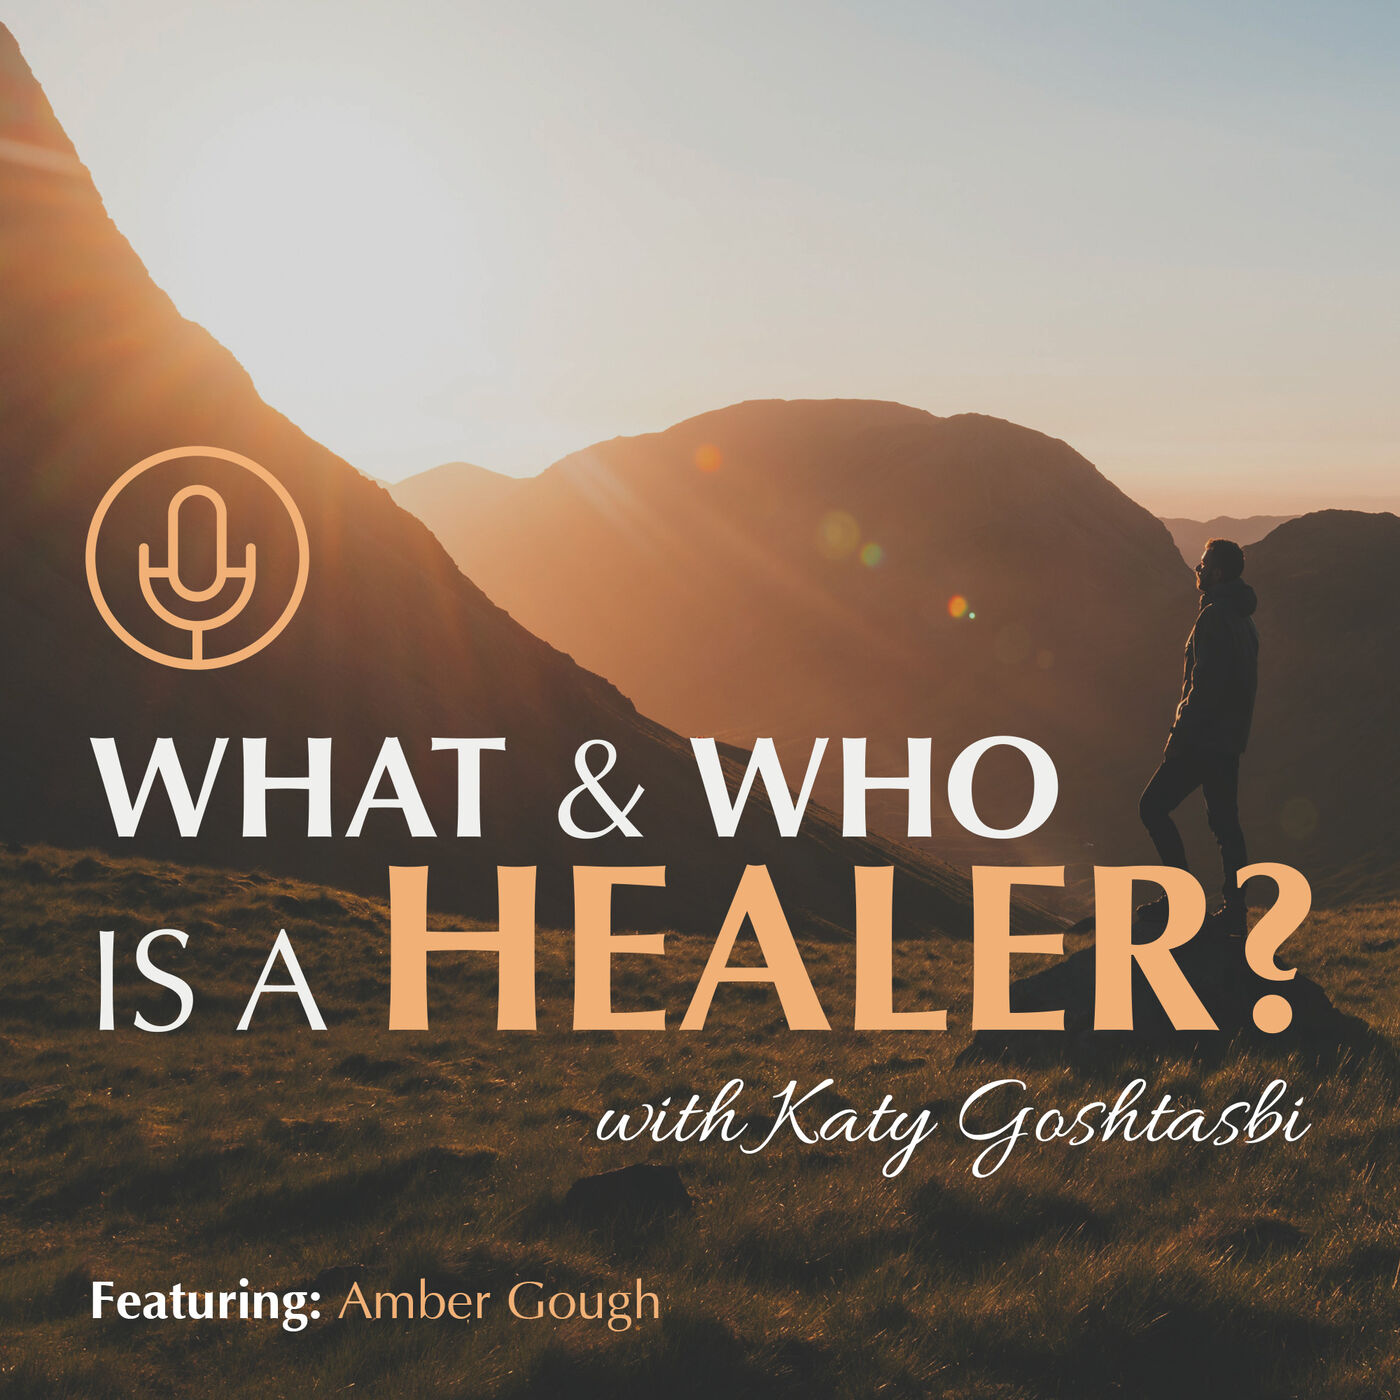 What & Who Is a Healer? Interview with Amber Gough